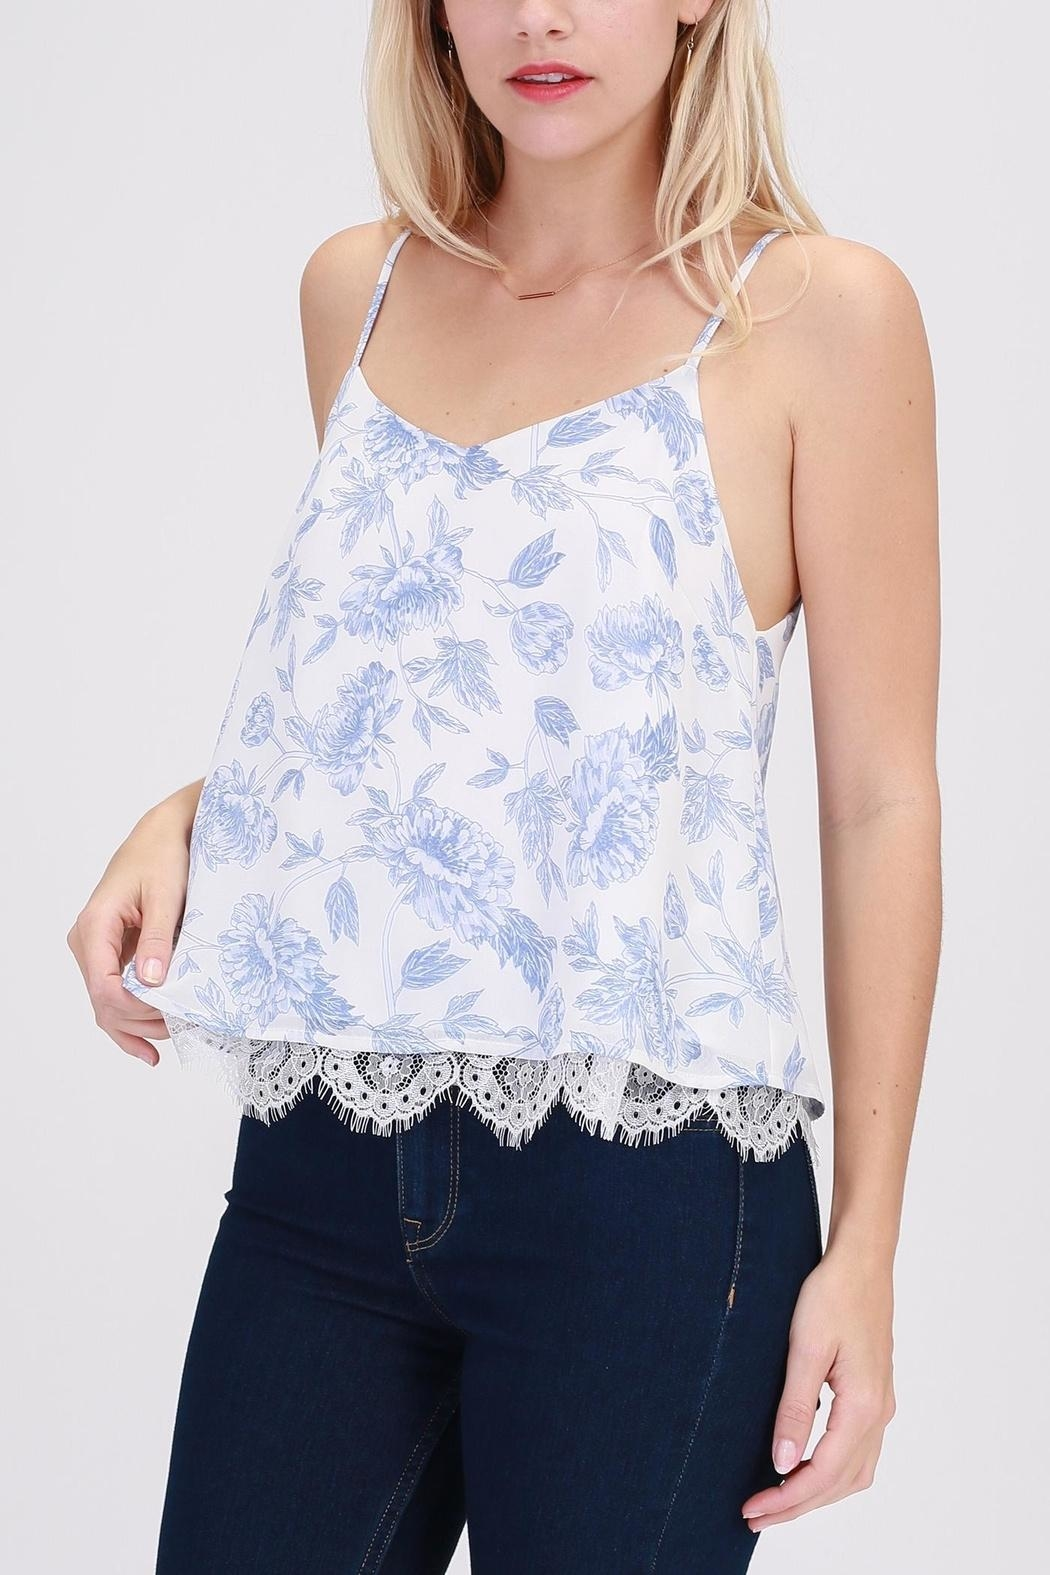 HYFVE Blue-Floral Perfection Top - Main Image